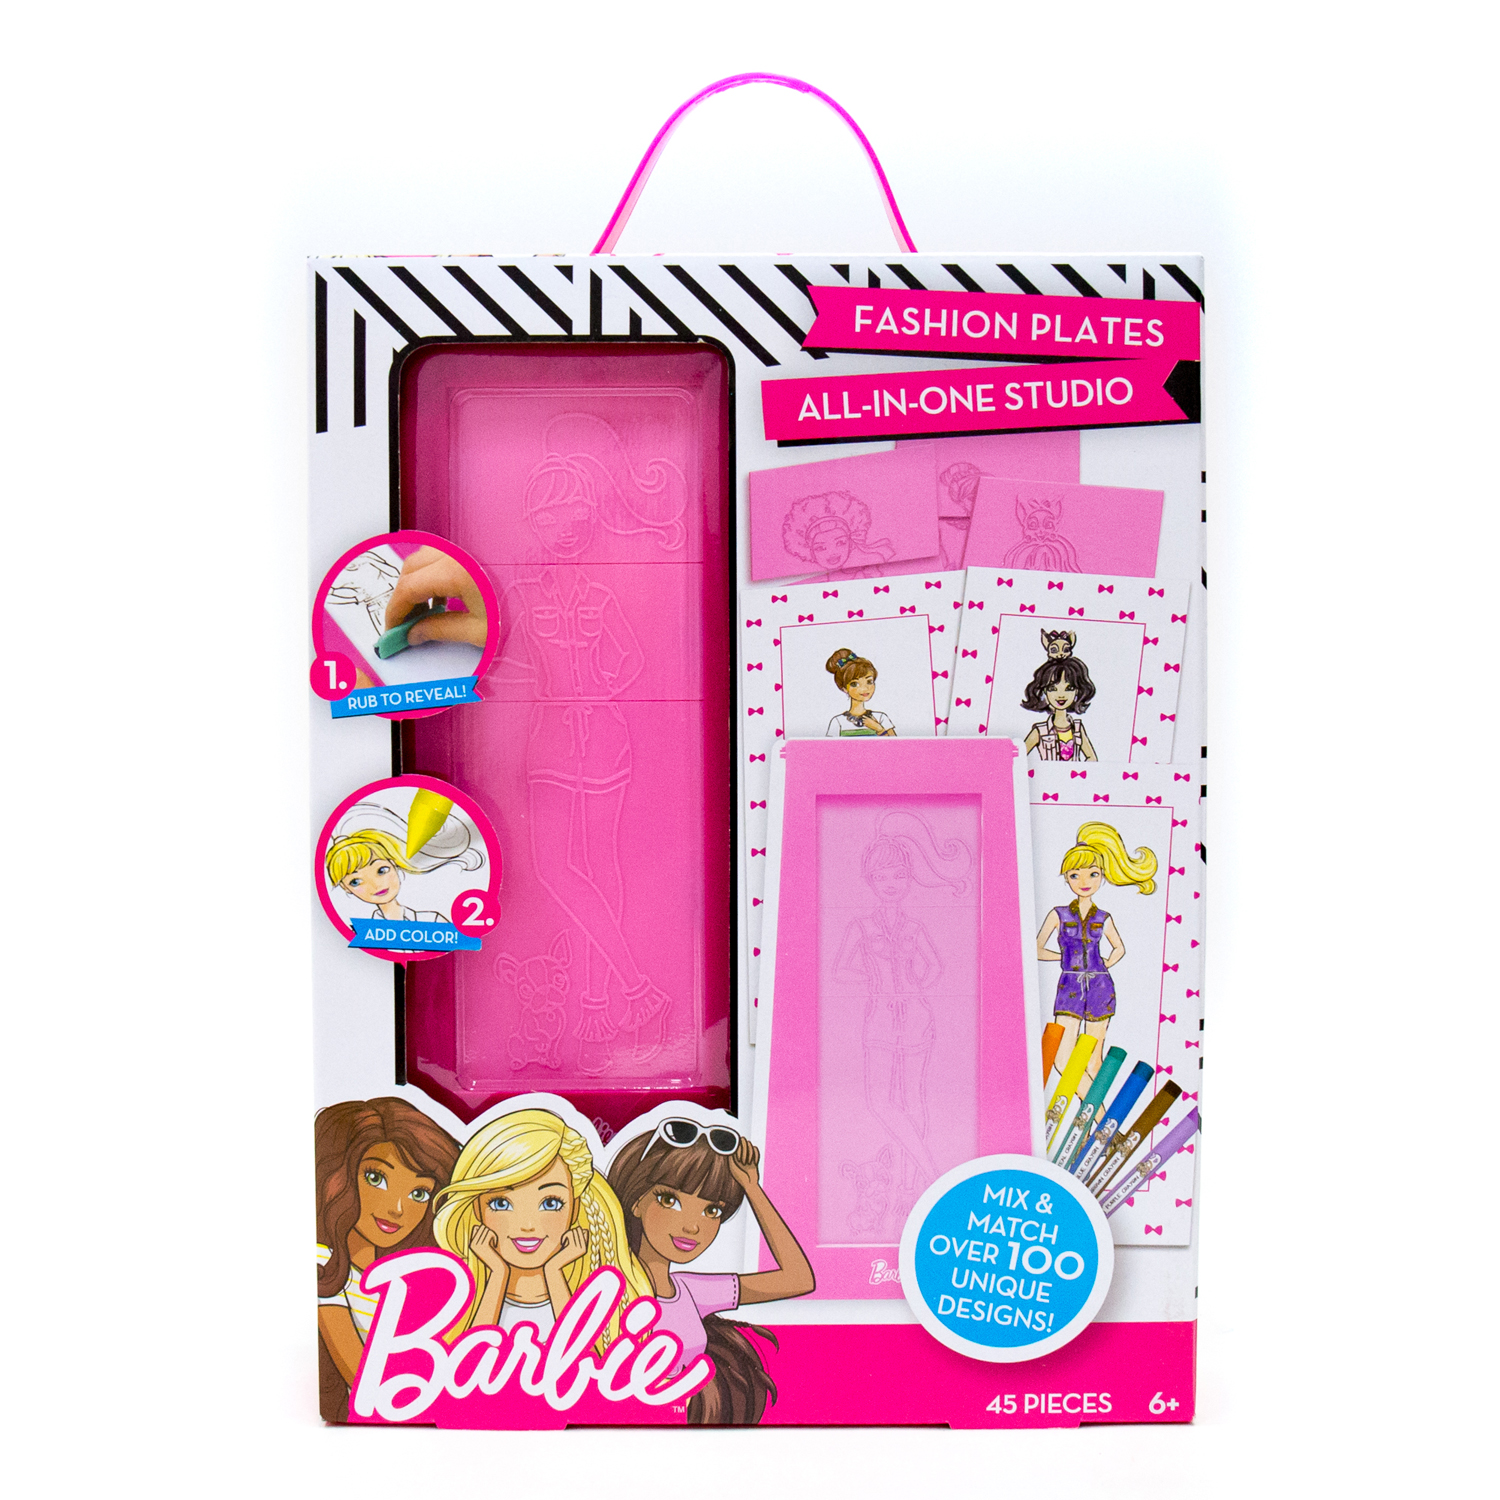 Barbie Mix and Match Fashion Plates by Horizon Group USA